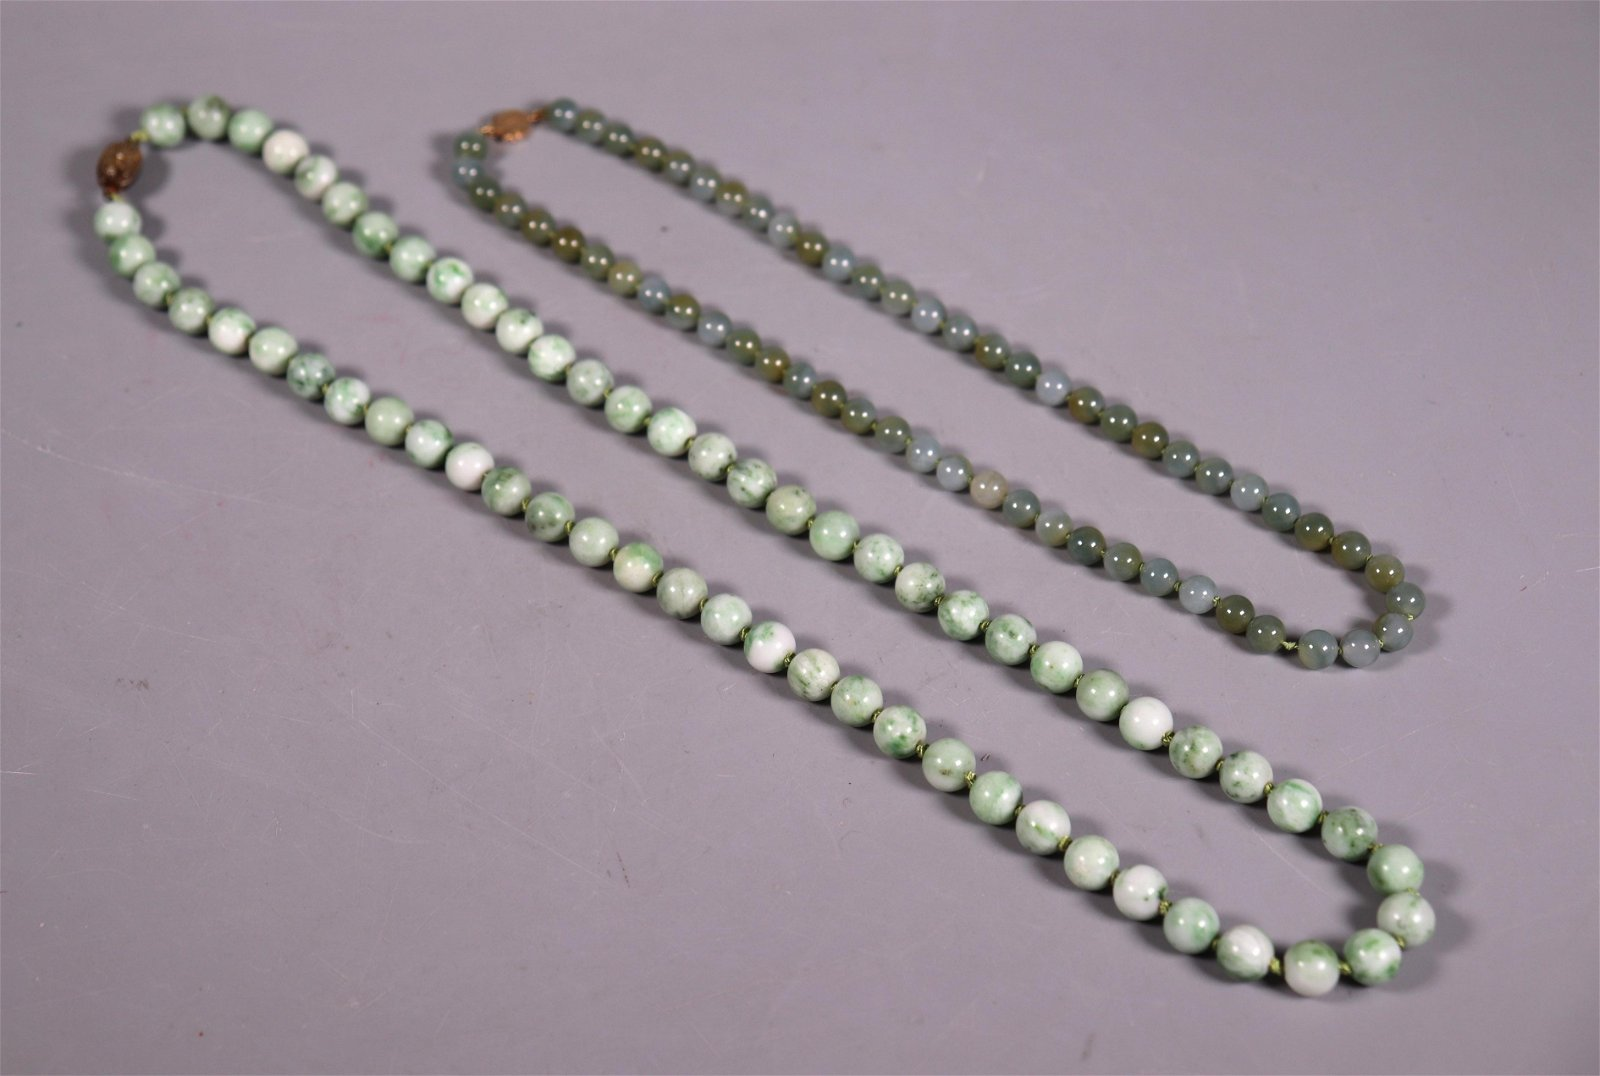 2 Chinese Natural Green Jadeite Bead Necklaces